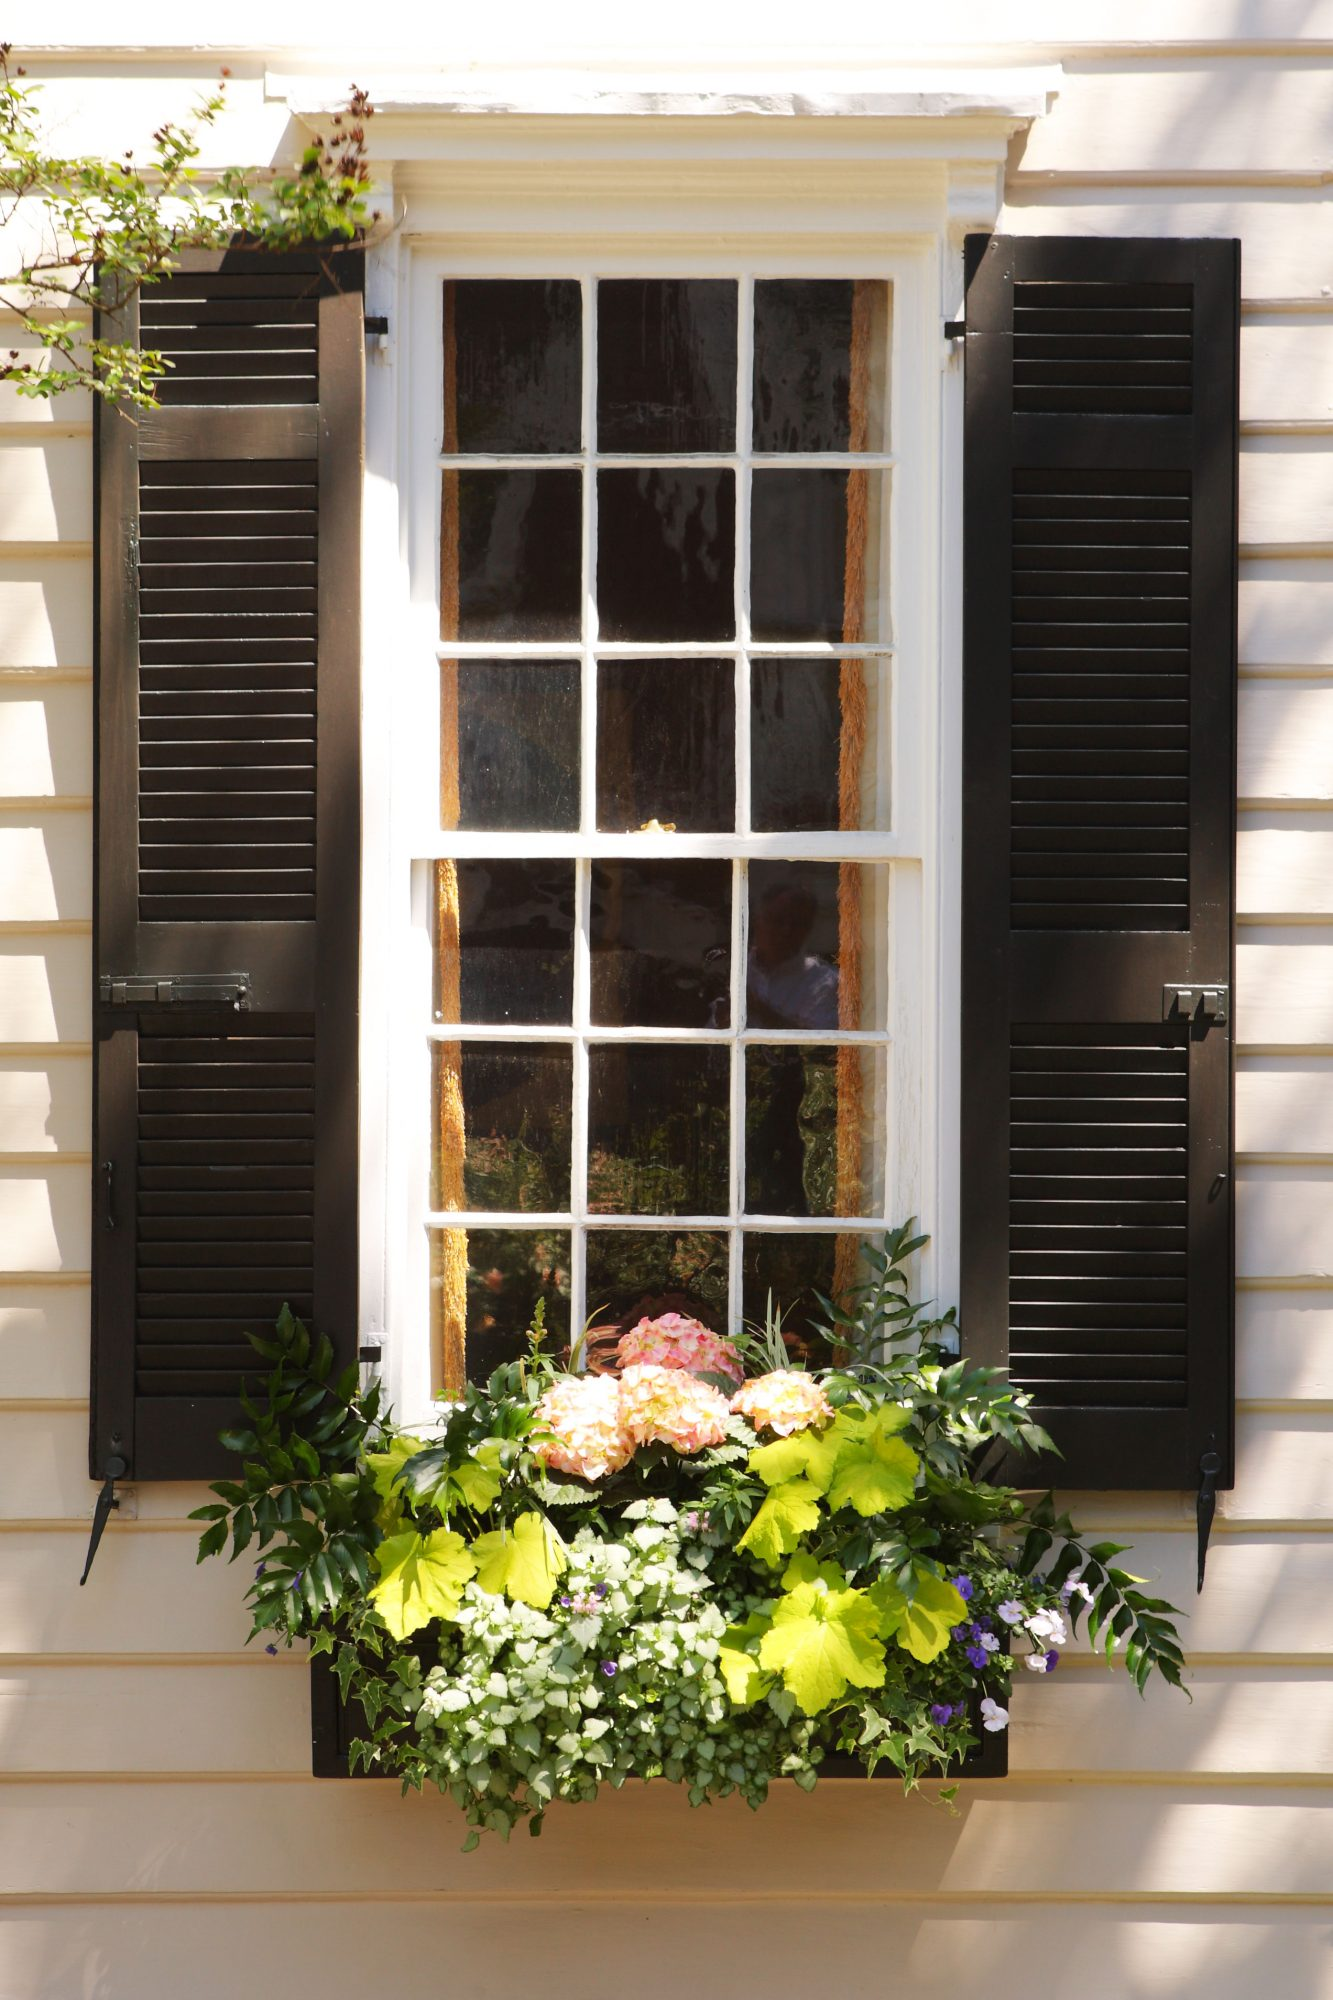 Windows with Black Shutters and Hydrangea and Ivy Window boxes